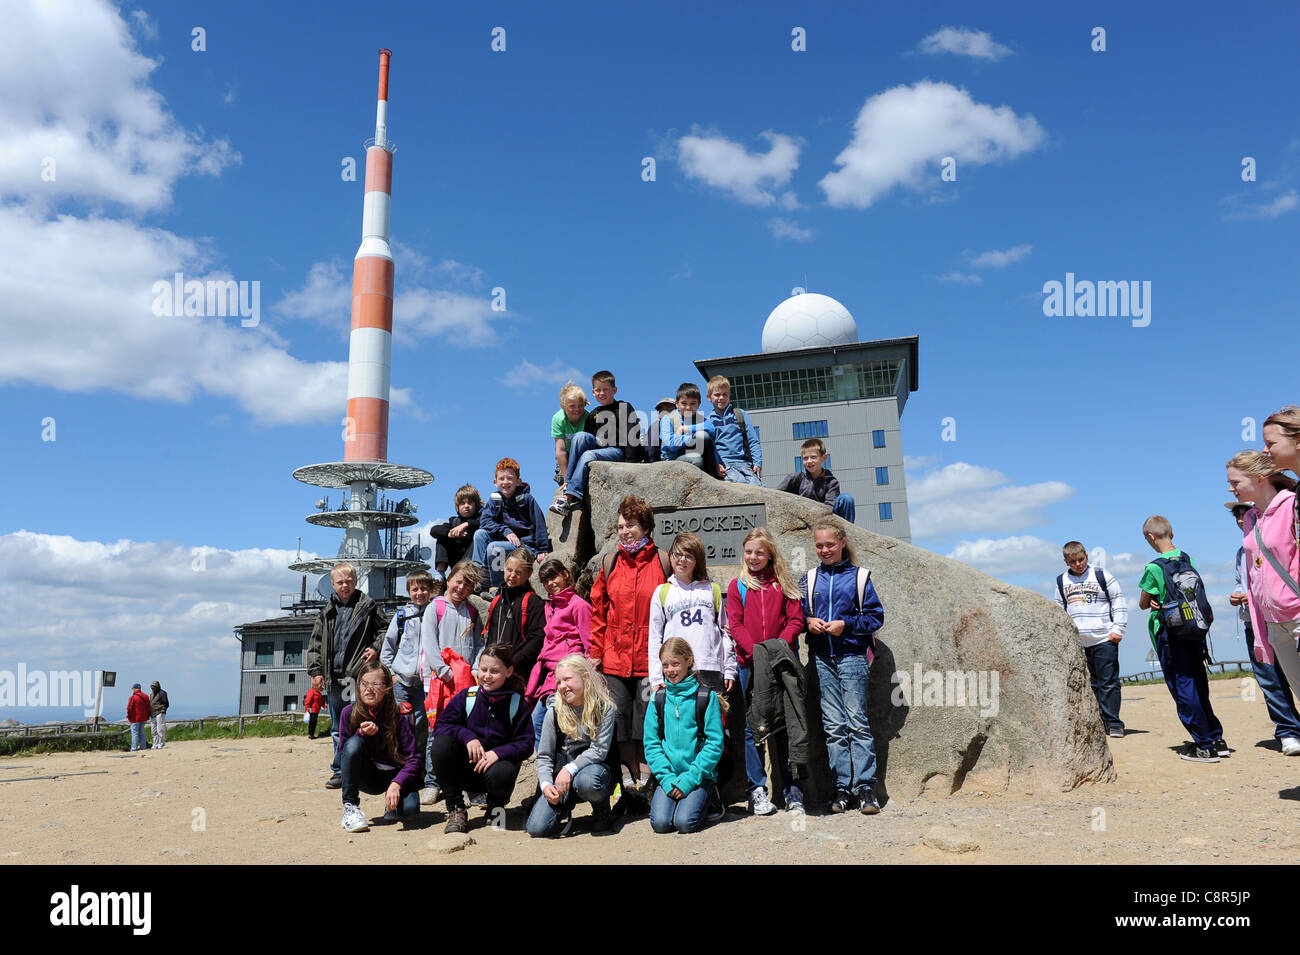 School children psoing for a photo at The summit of the Brocken mountain in the Harz Germany - Stock Image